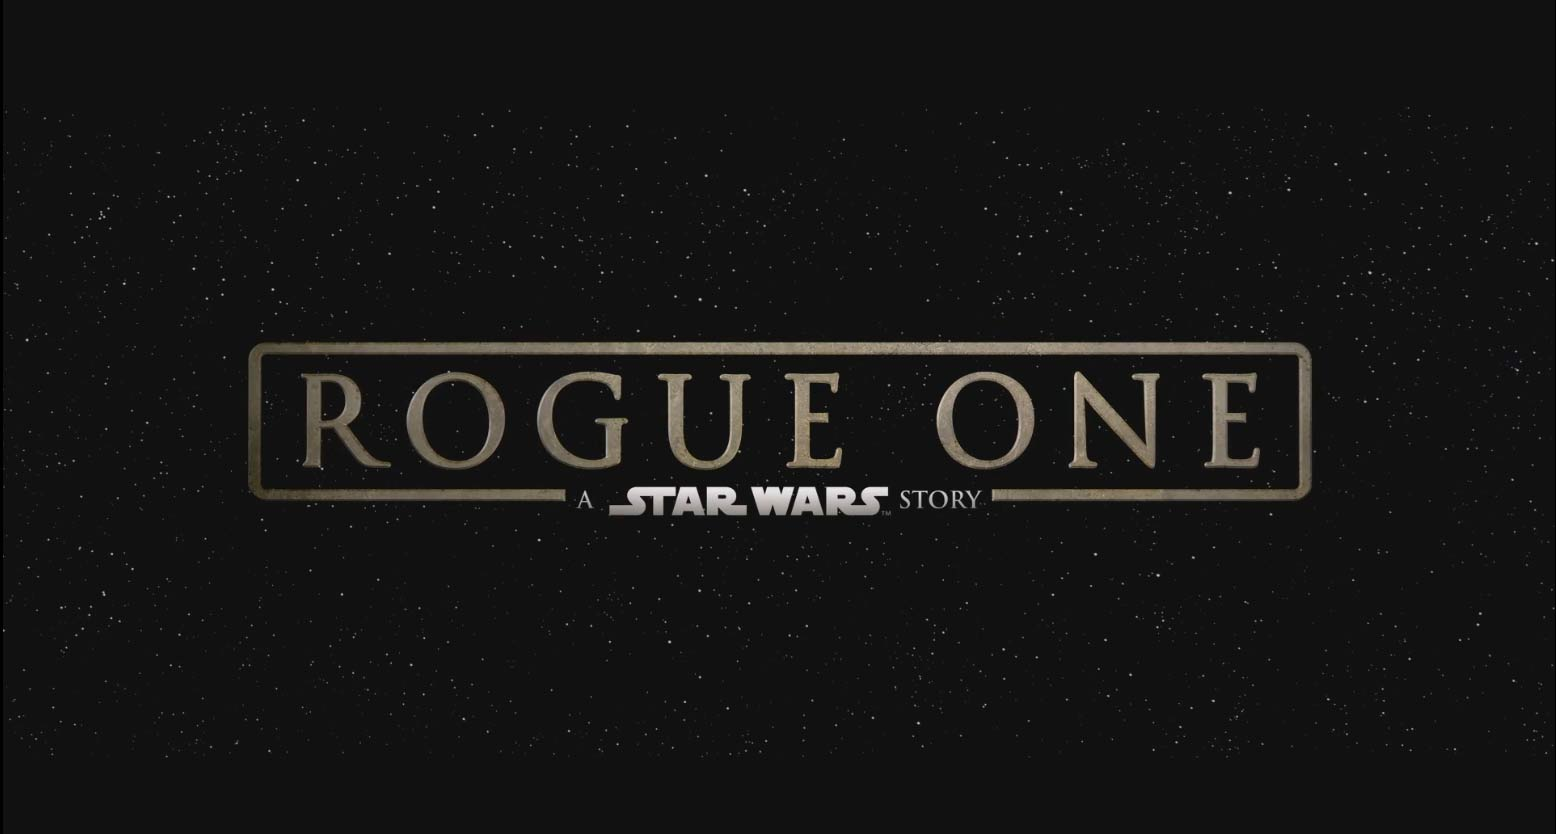 Star Wars: Rogue One Teaser Trailer Screencap 2